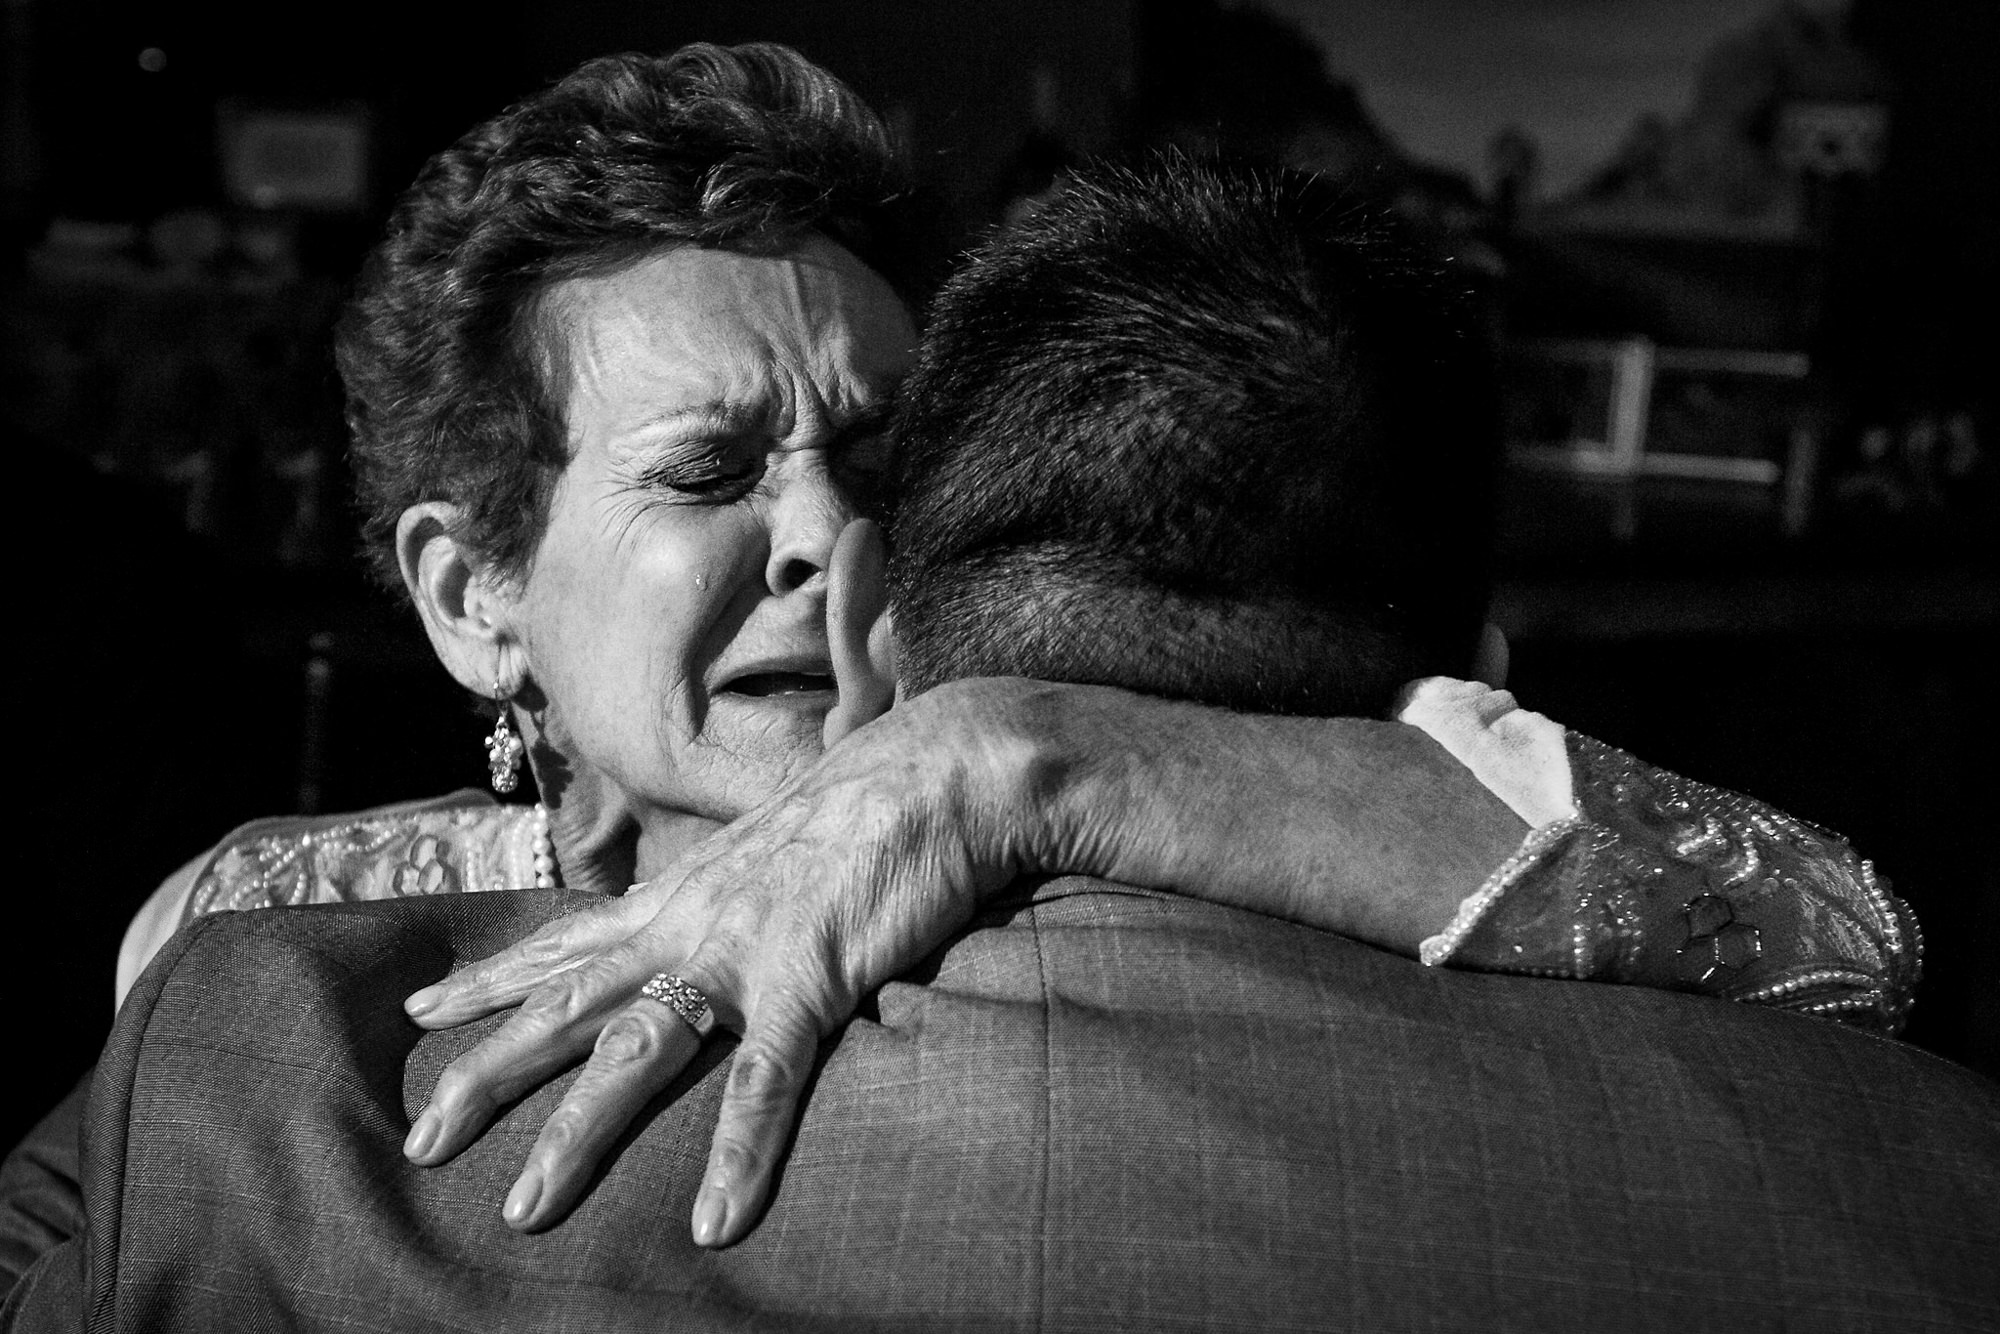 mother-cries-embraces-her-son-before-ceremony-worlds-best-wedding-photos-two-mann-canada-photographers